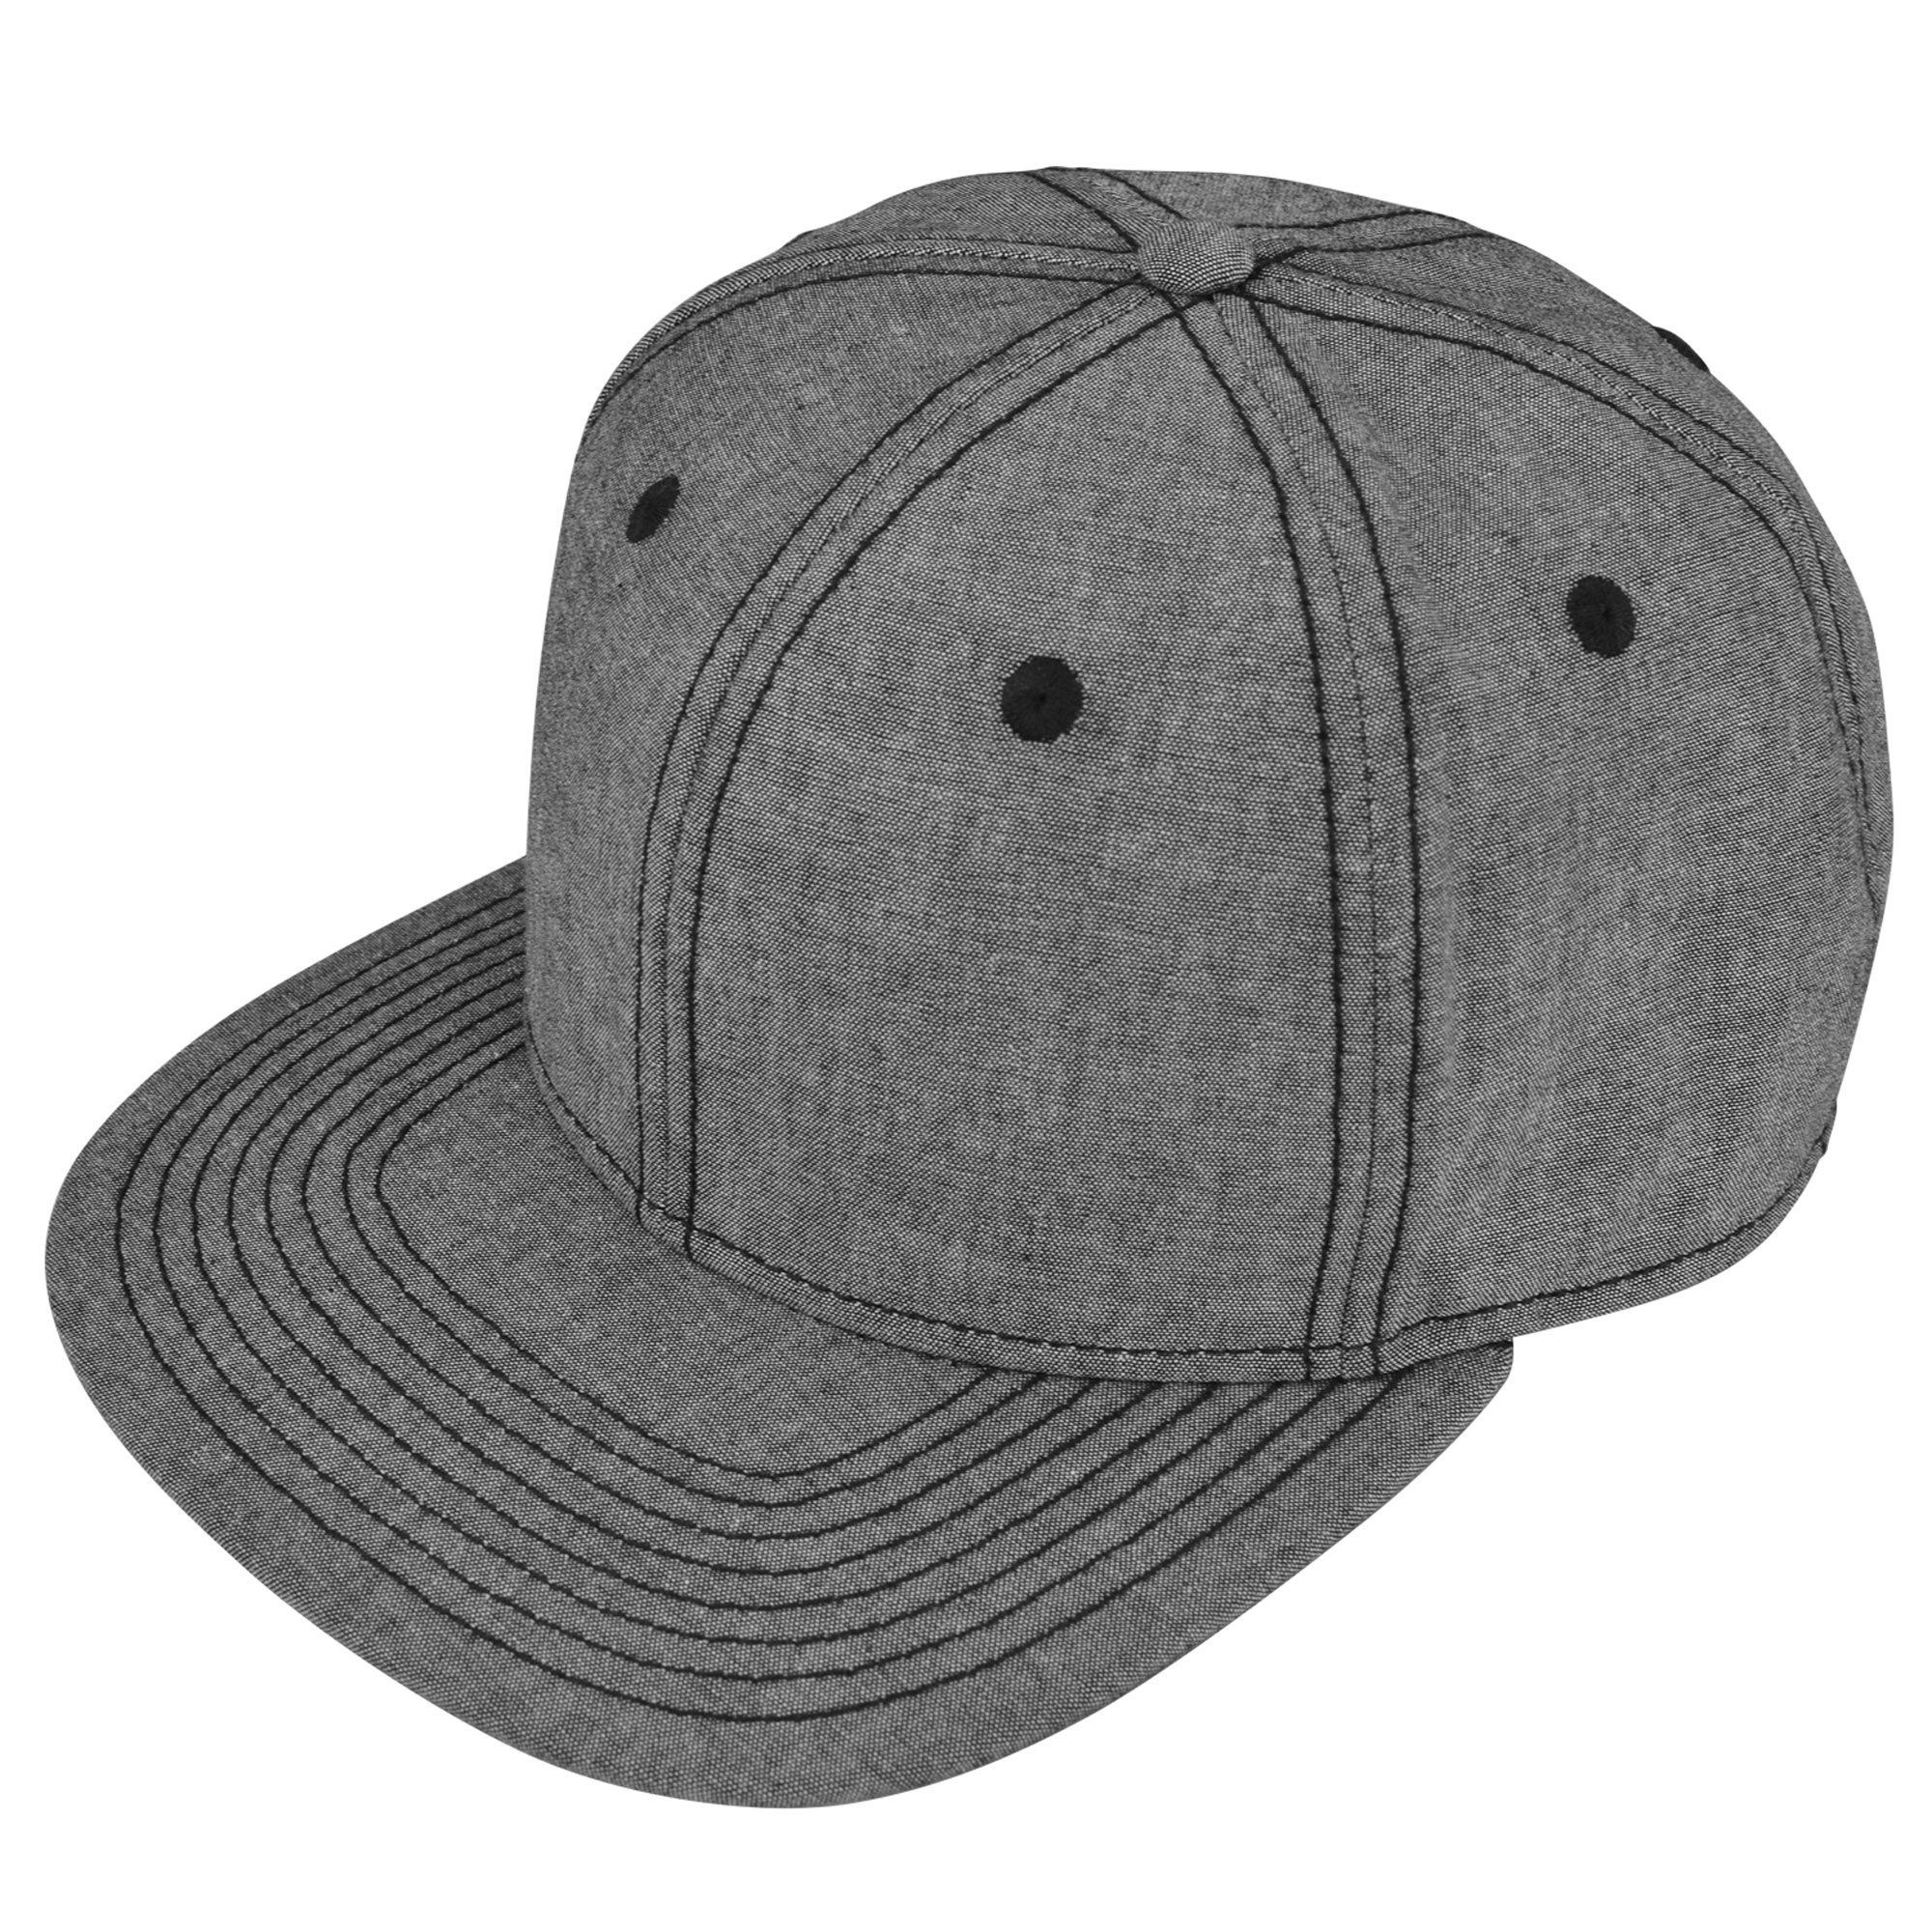 DALIX Premium Flat Bill Snapback Chambray Hat 6 Panel Cap (Black)